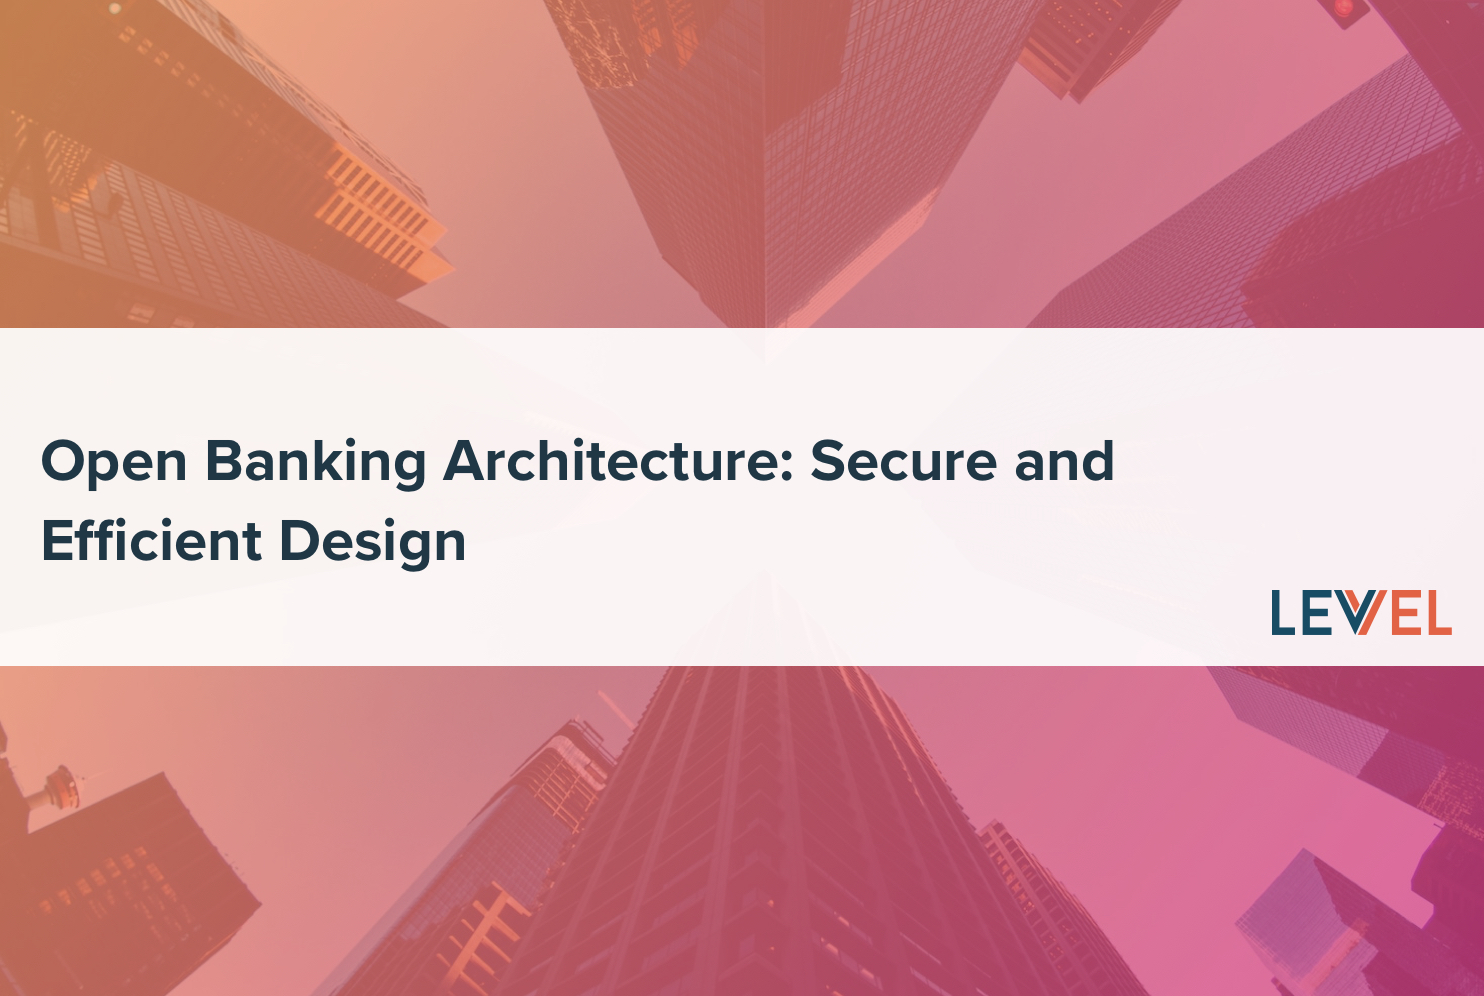 Open Banking Architecture: Secure and Efficient Design